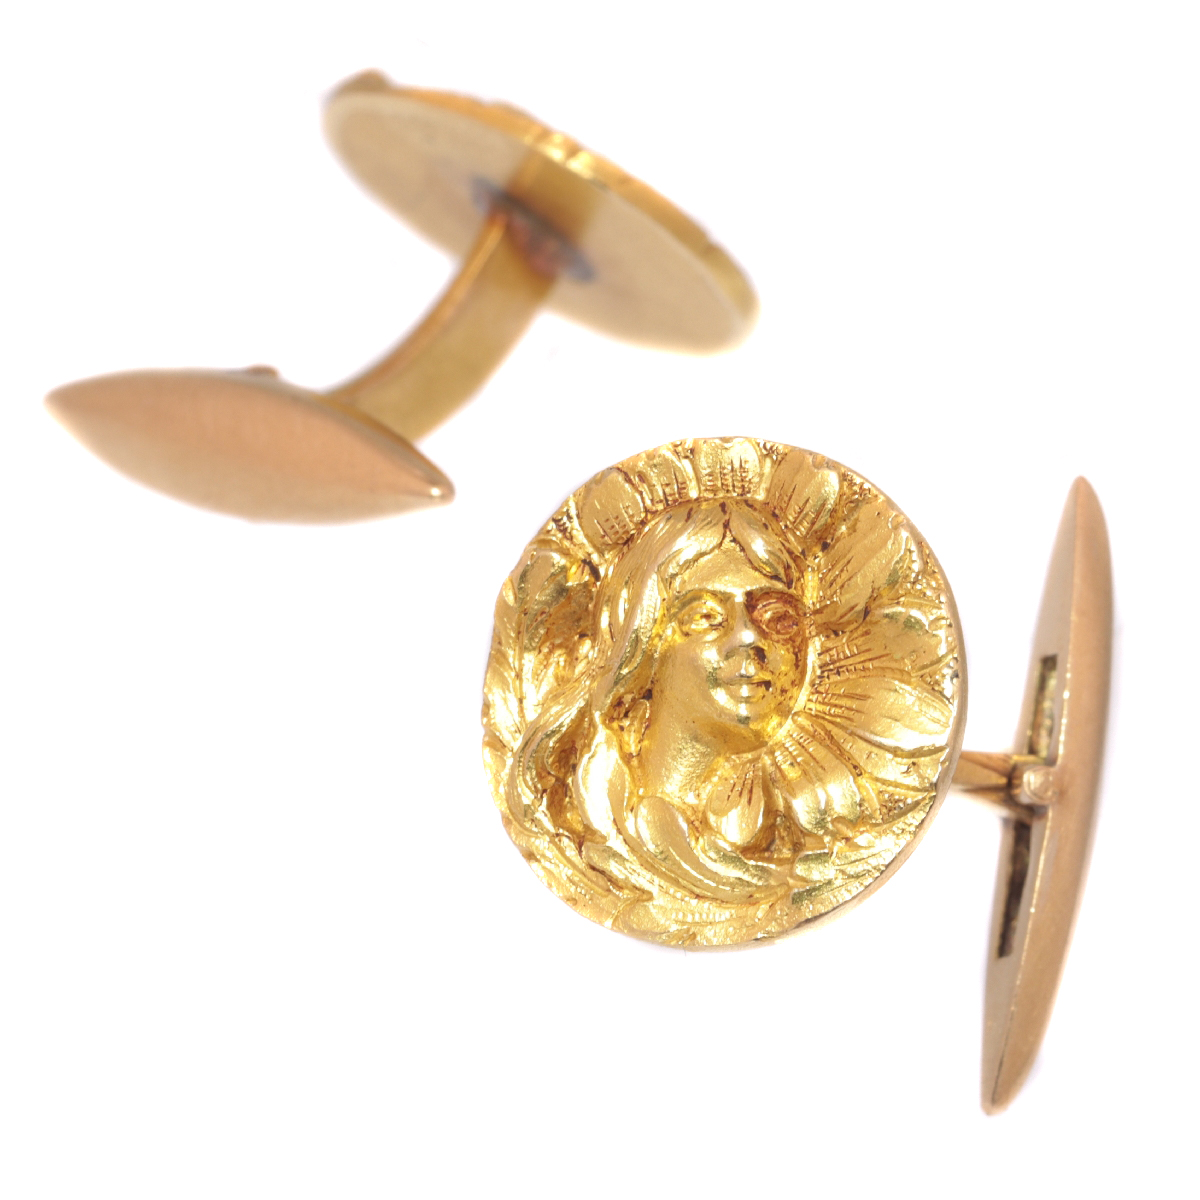 Art Nouveau 18K yellow gold cuff links